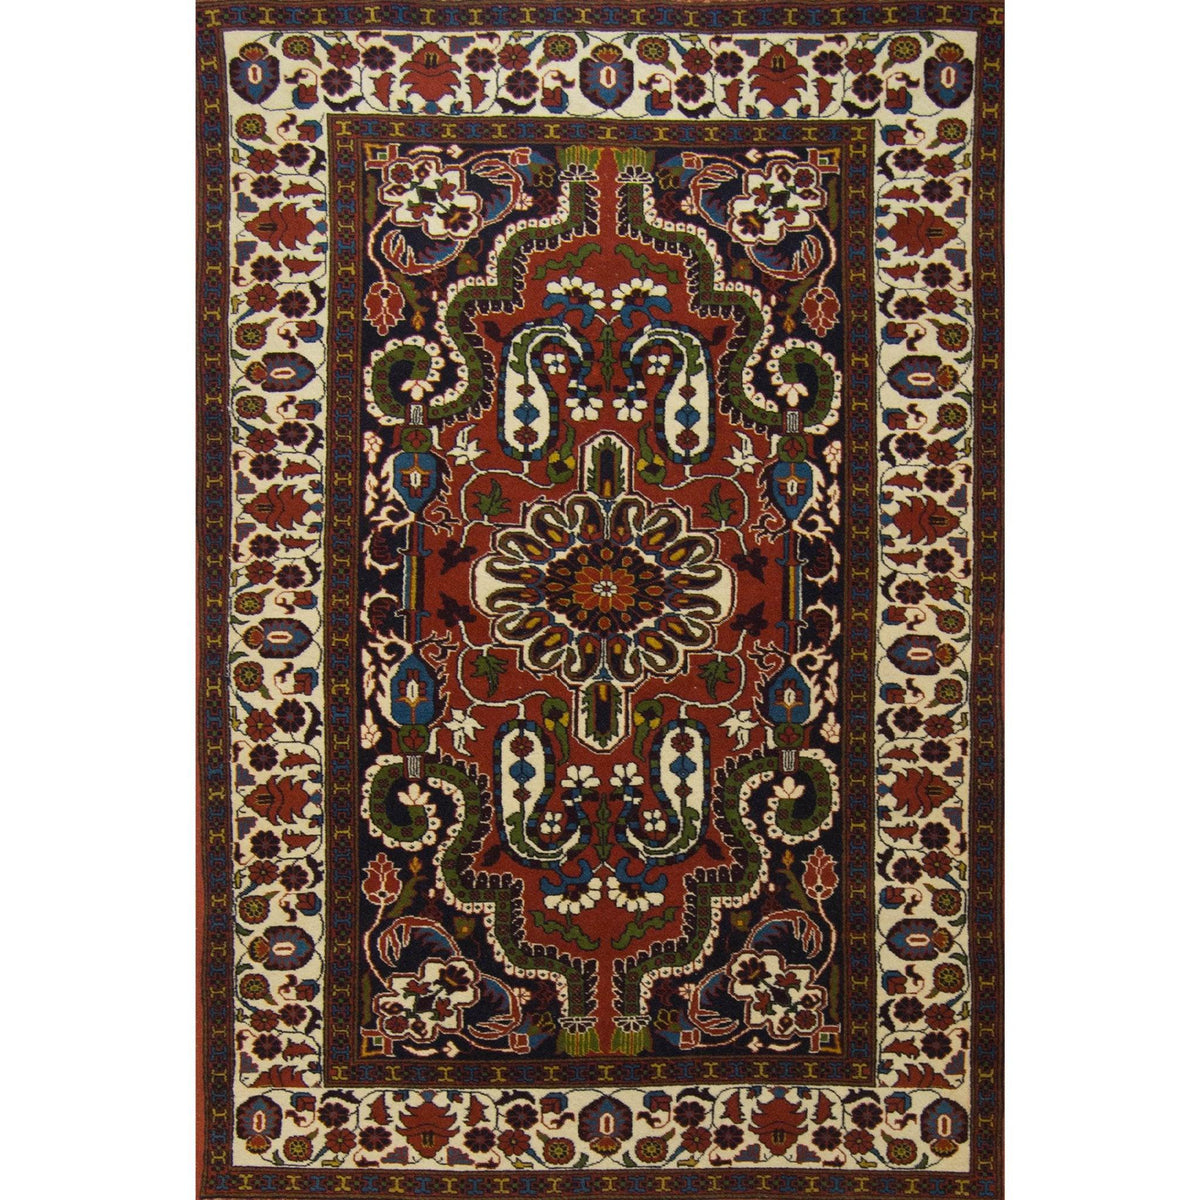 Fine Hand-knotted Persian Yalameh Rug 120cm x 188cm Persian-Rug | House-of-Haghi | NewMarket | Auckland | NZ | Handmade Persian Rugs | Hand Knotted Persian Rugs